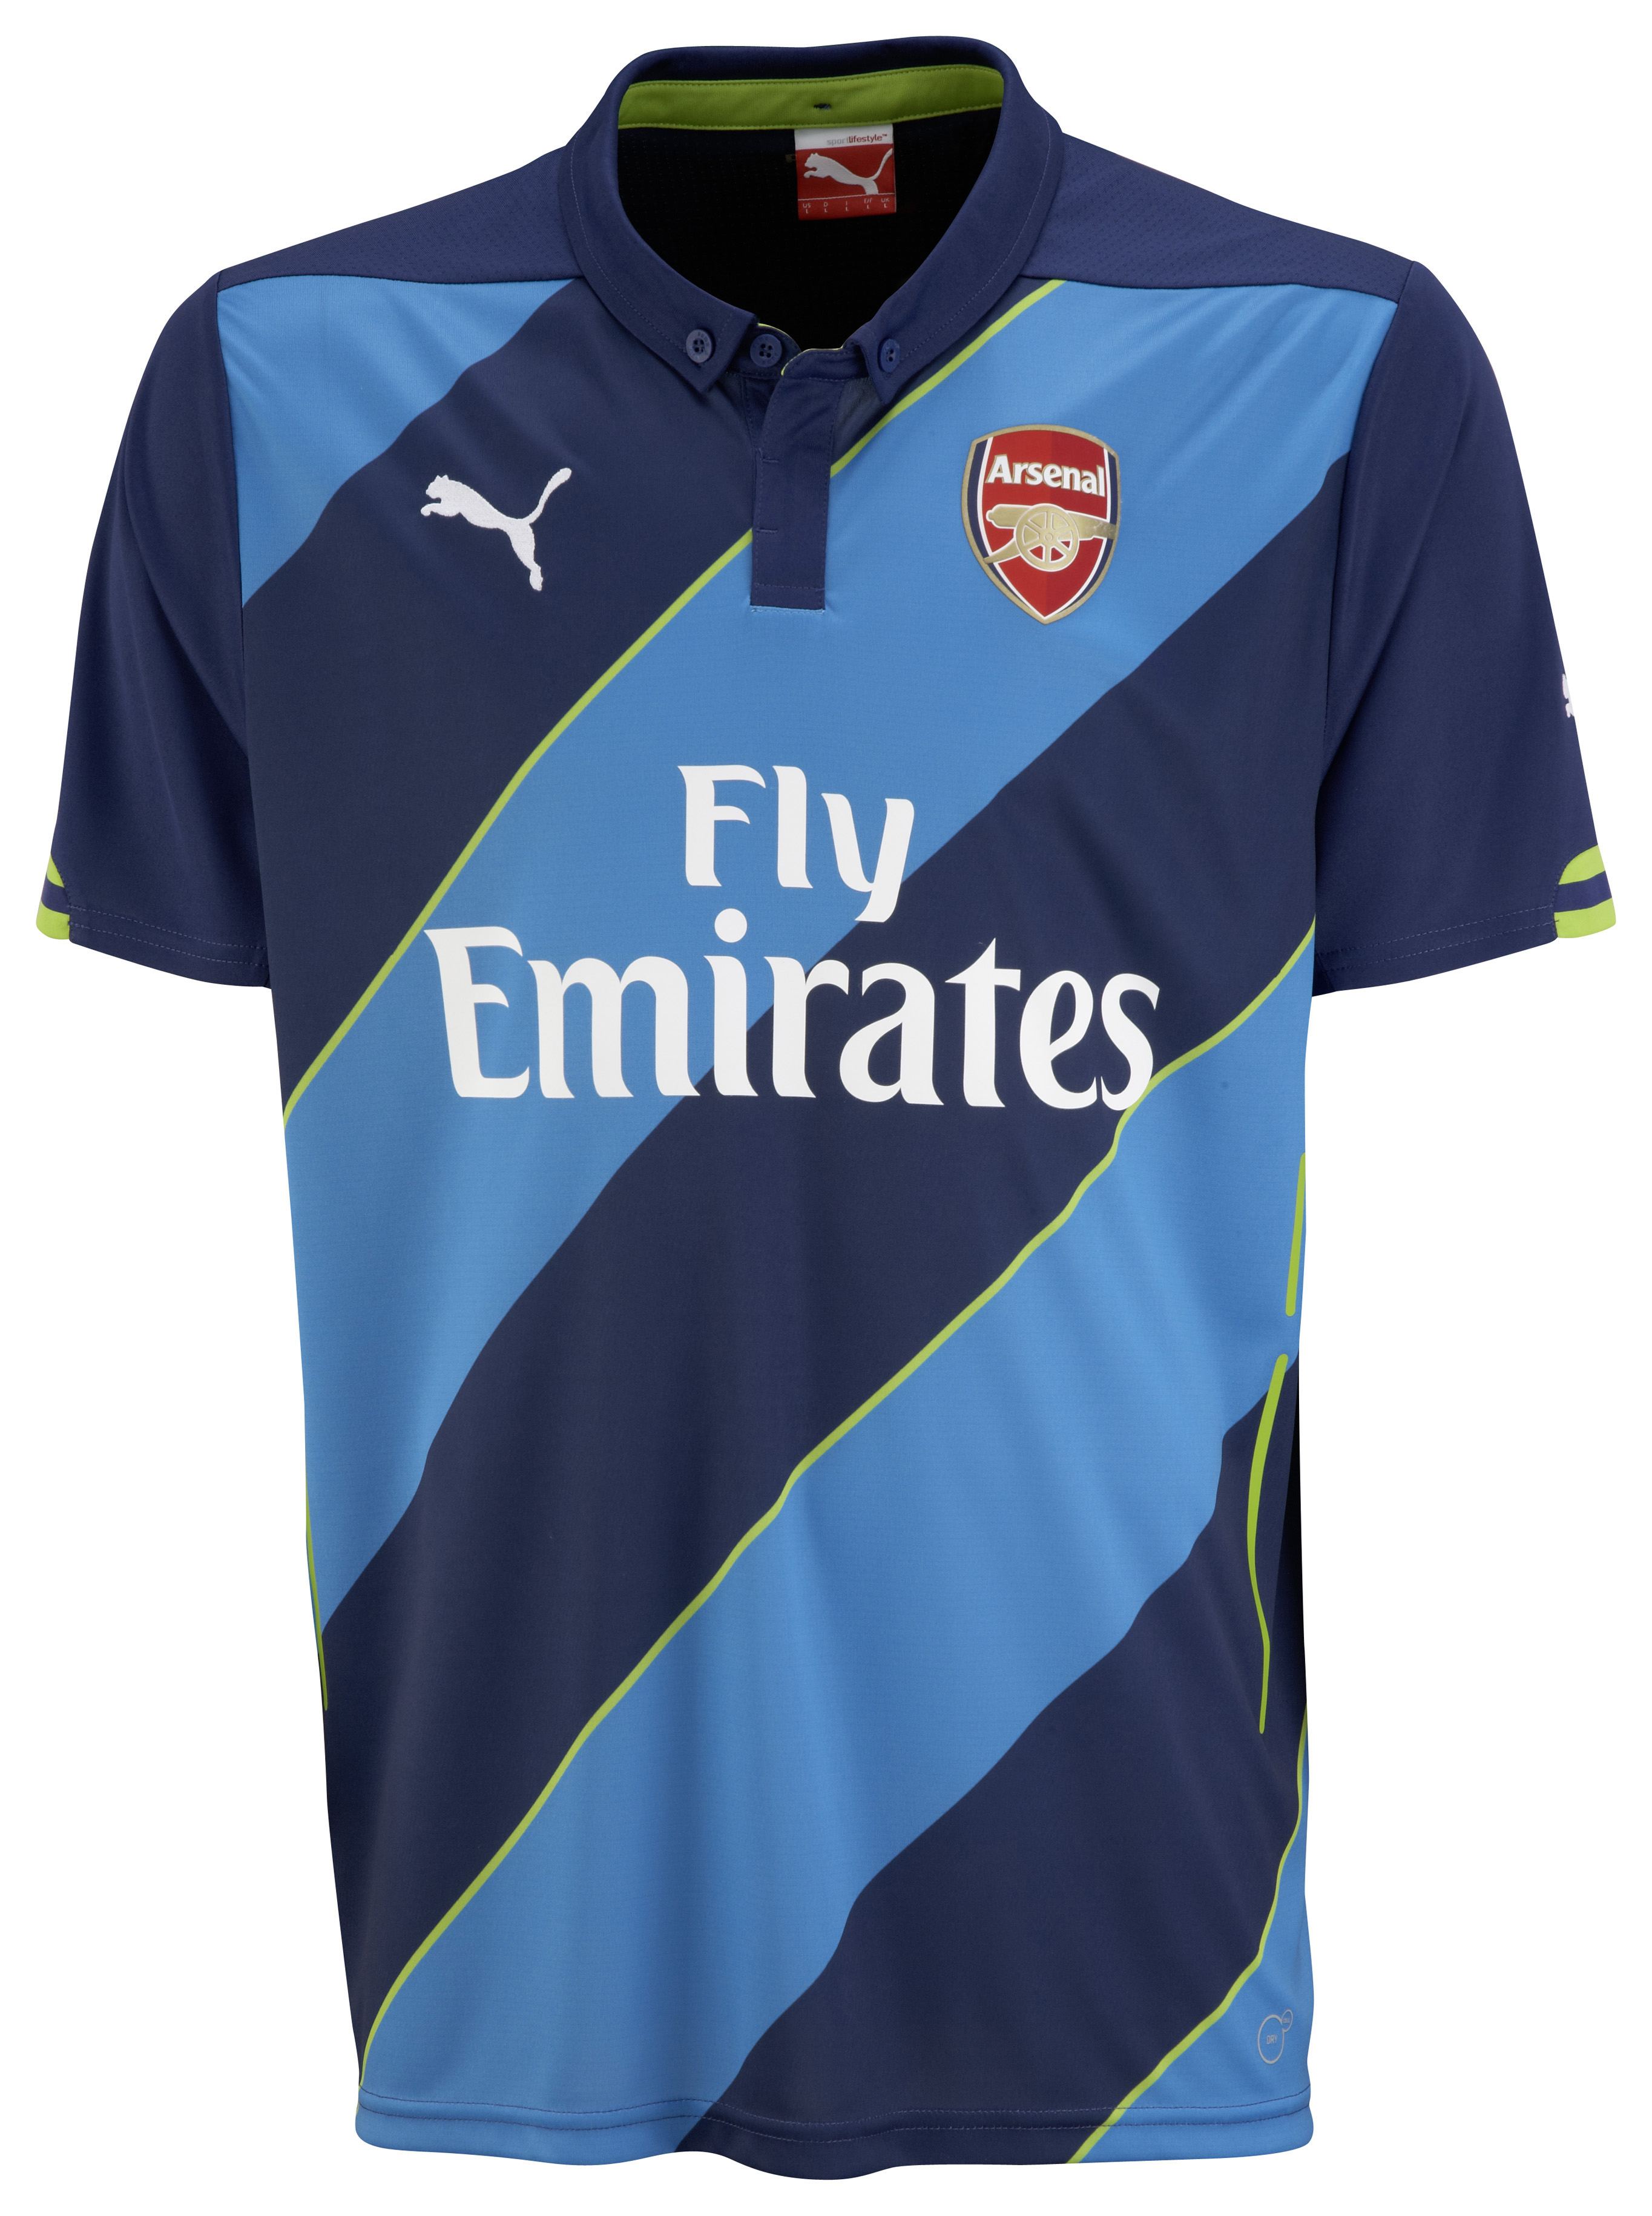 Arsenal 3rd Shirt 2014/15